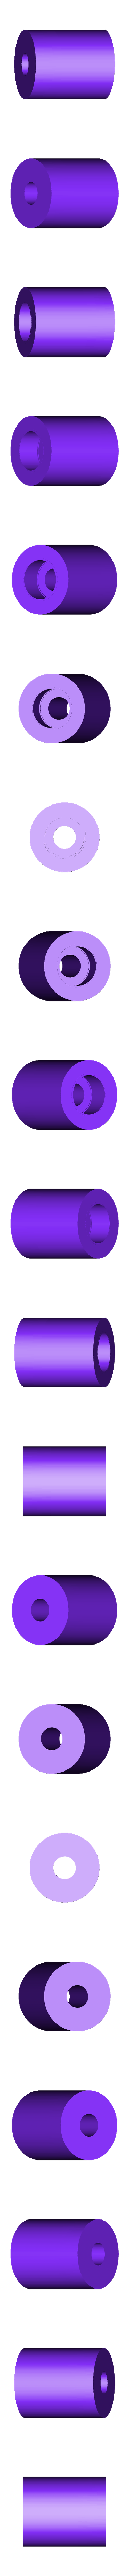 Val.stl Download free STL file Lifting Gear For Automatic Nozzle Cleaner • 3D print template, Ruvimkub